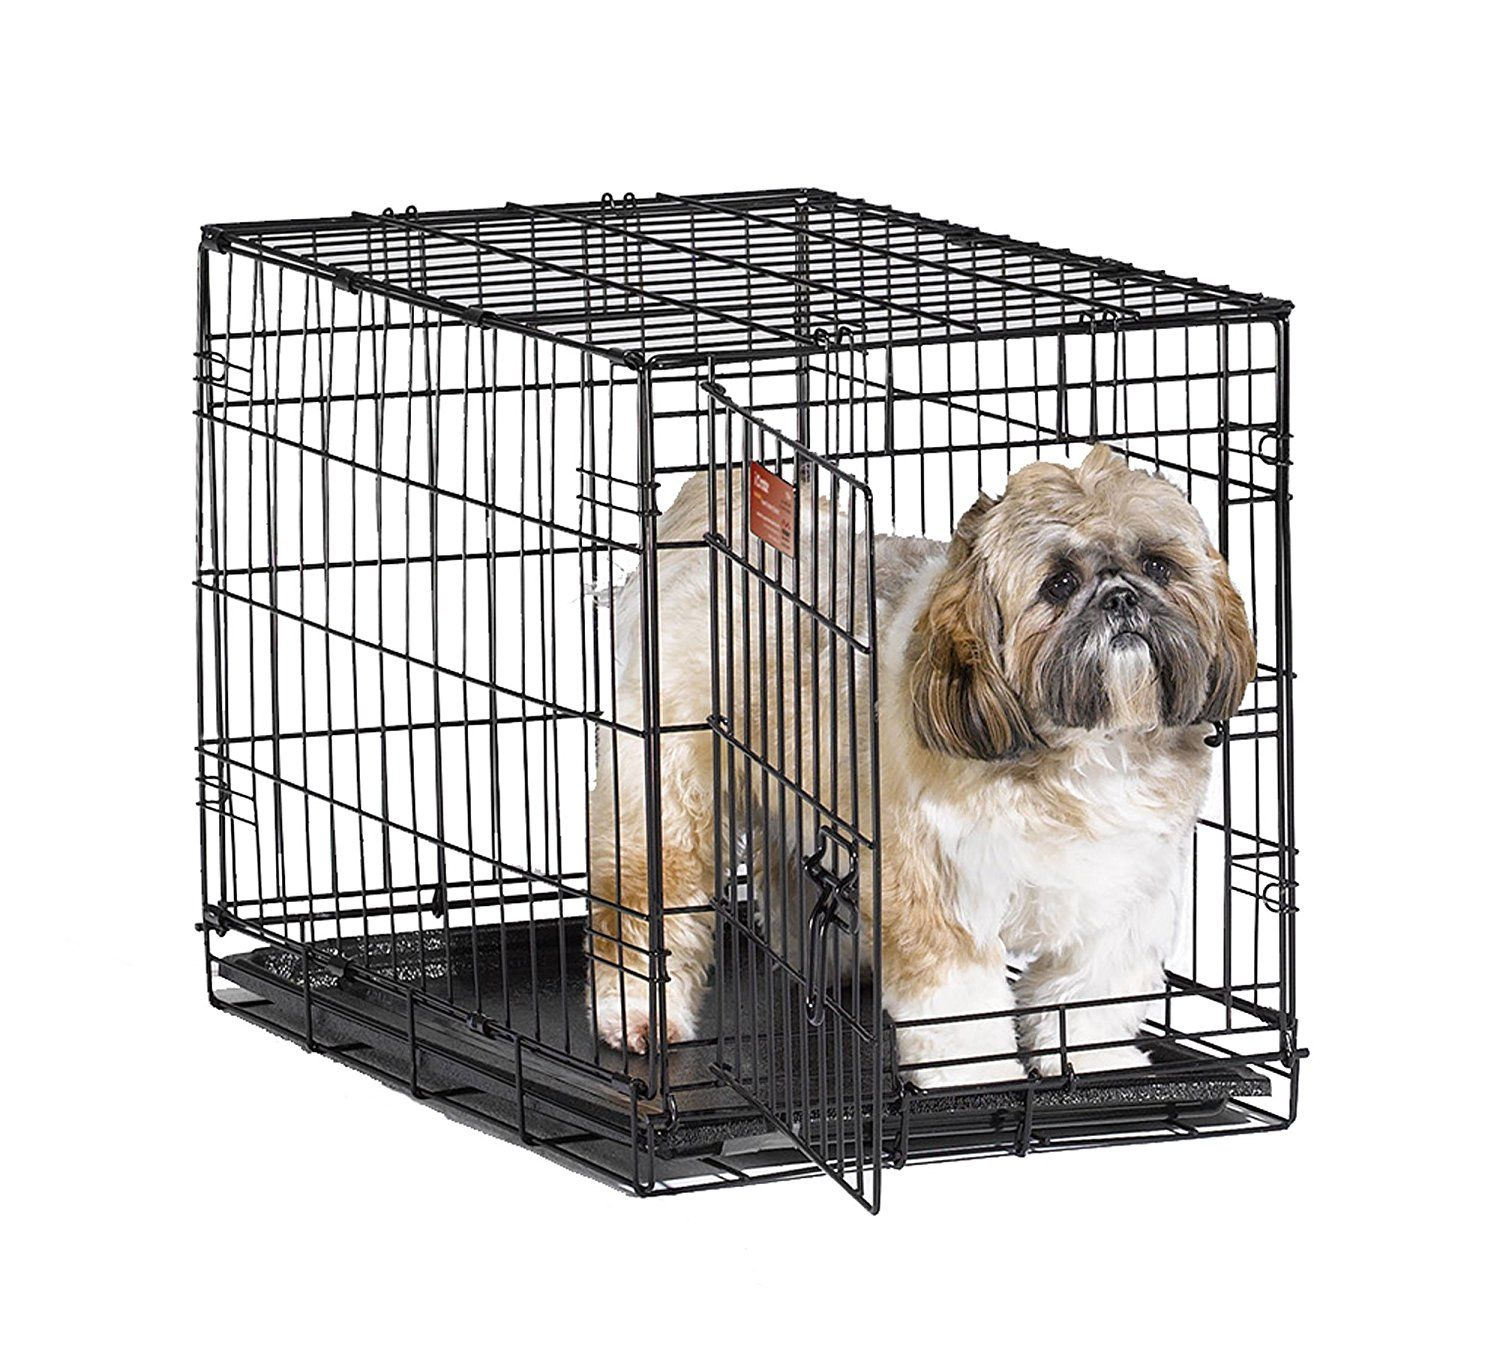 Midwest Icrate Folding Metal Dog Crate You Can Get More Details Here This Is An Amazon Affiliate Link I May Earn Commi Wire Dog Crates Dog Cages Dog Crate